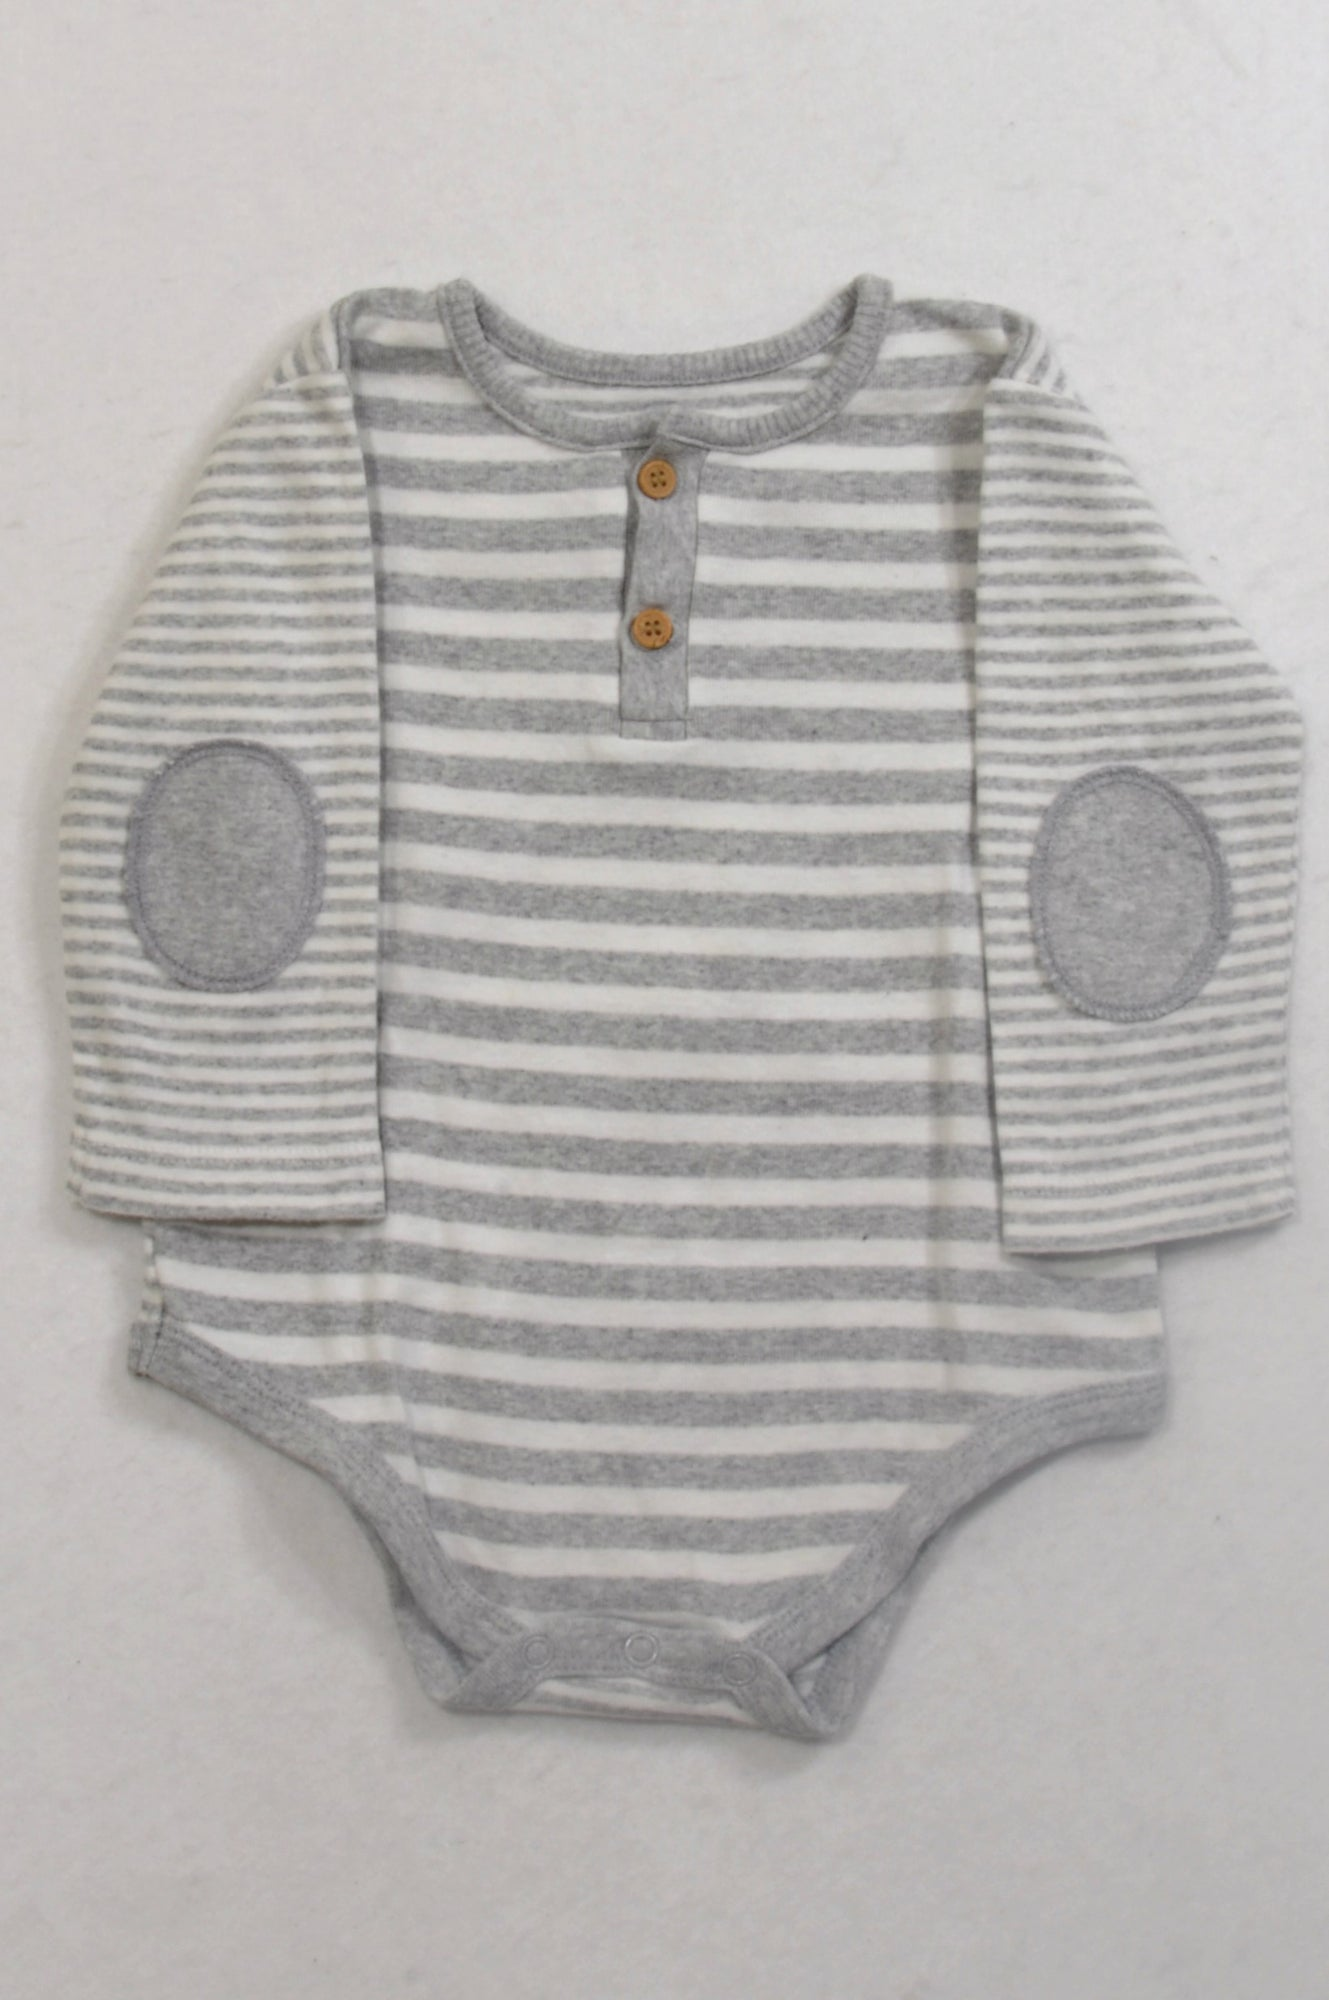 7eba4c95d Woolworths Grey   White Stripe Baby Grow Unisex 6-12 months – Once More